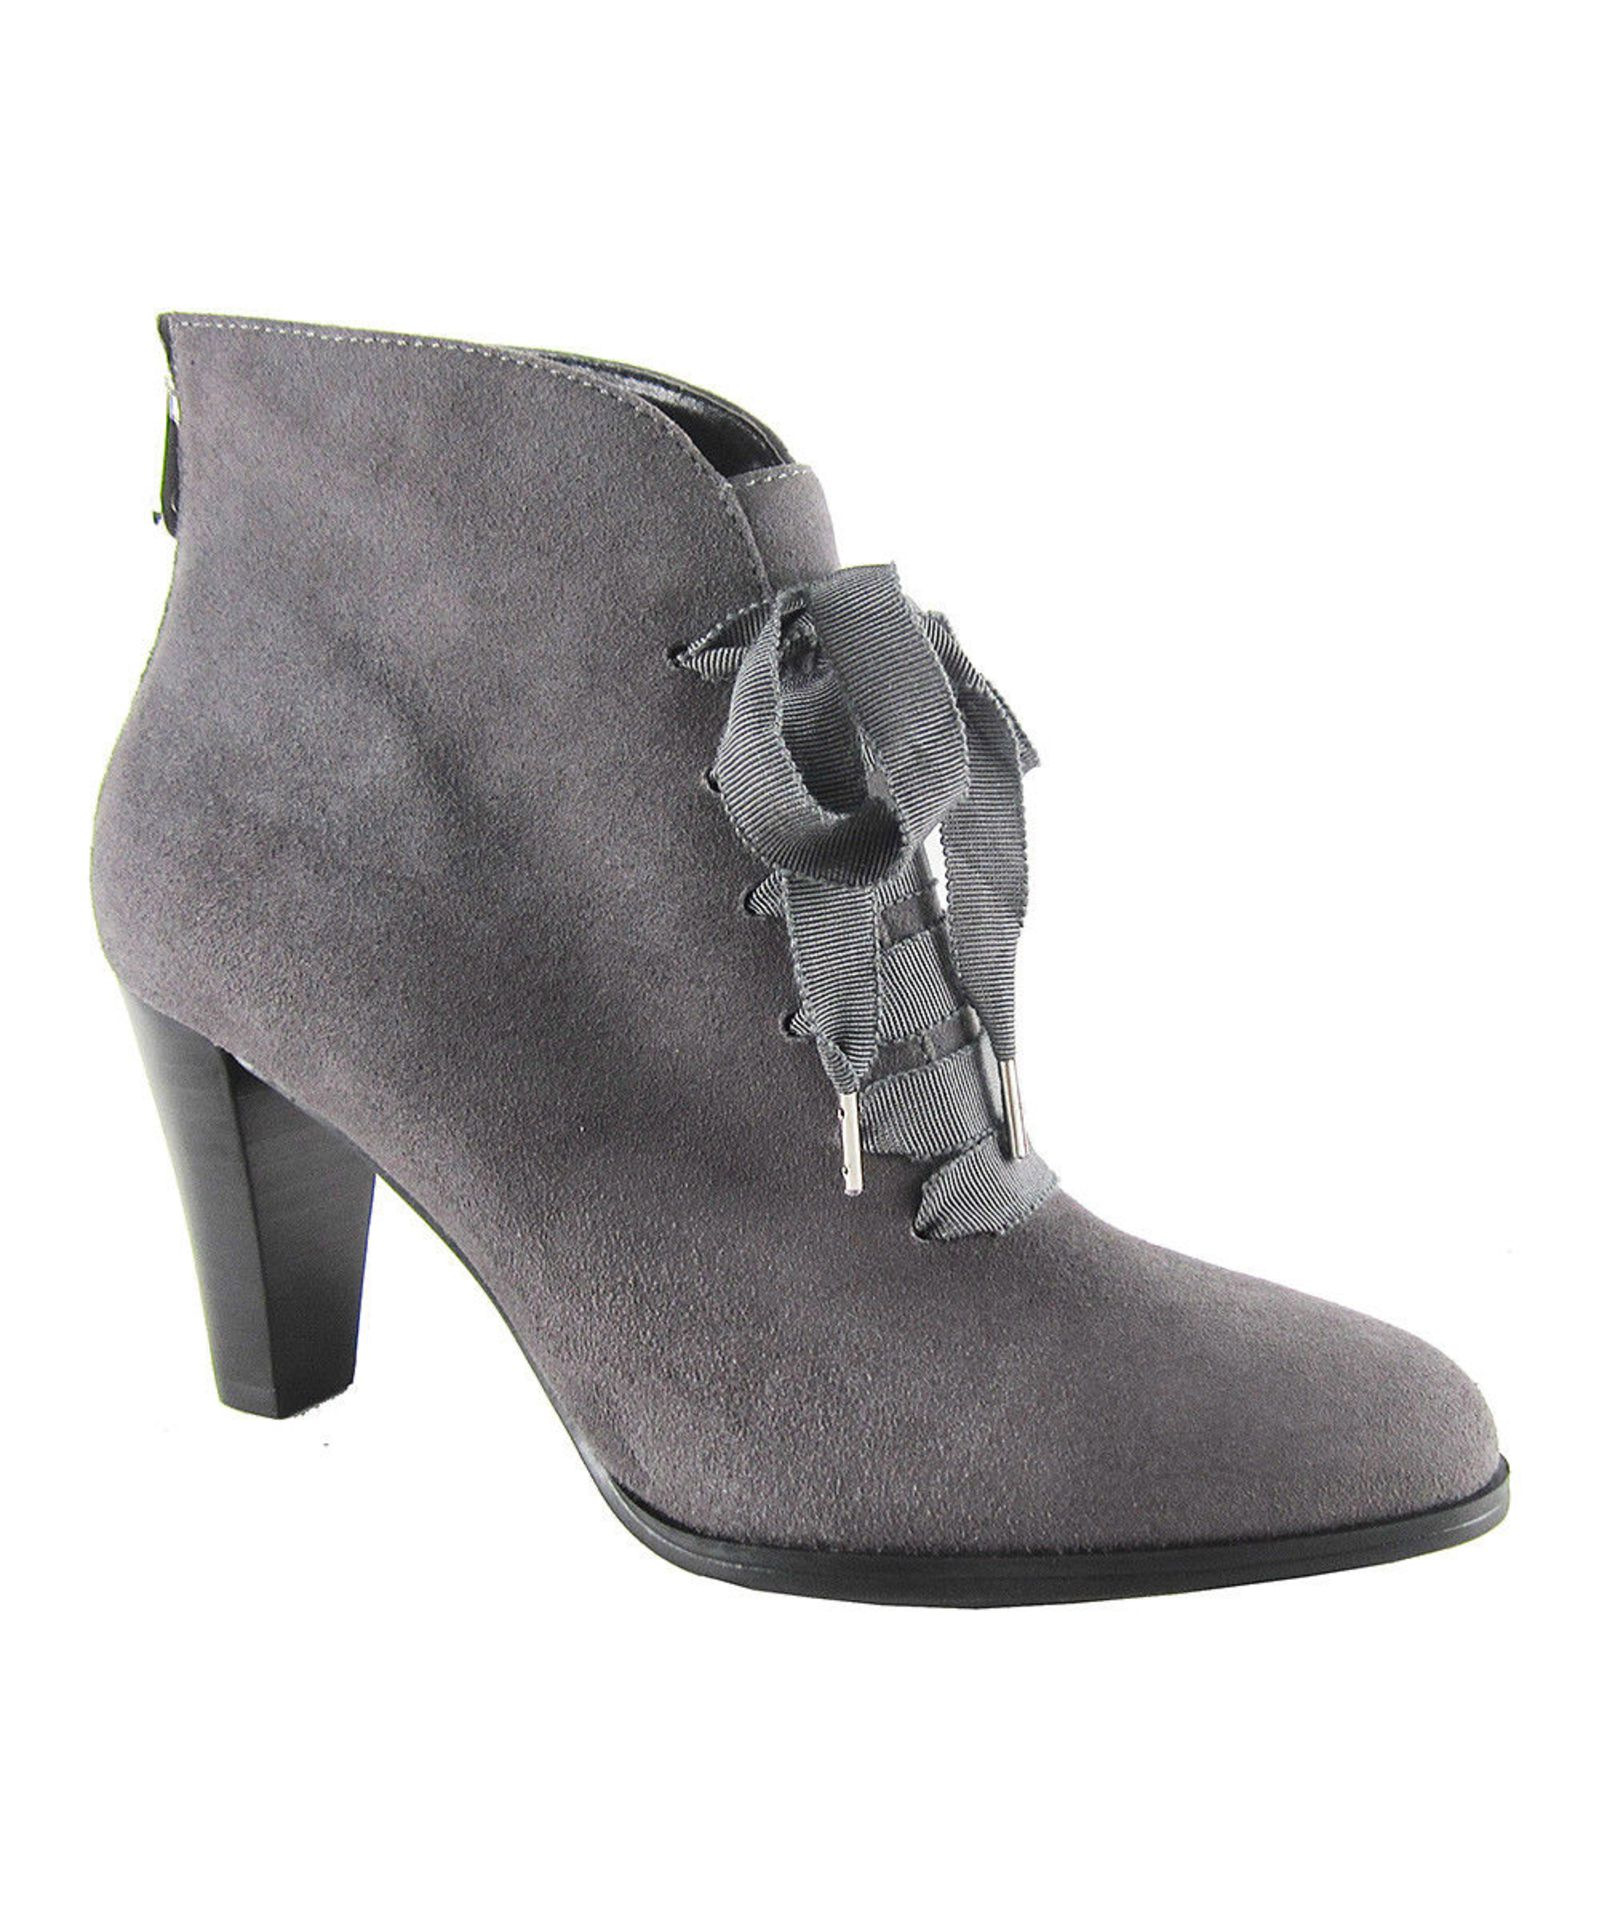 Lot 10 - Adrienne Vittadini® Night Tino Suede Bootie (Uk Size:4.5/Us Size:77) (New With Box) [Ref: 34993612-